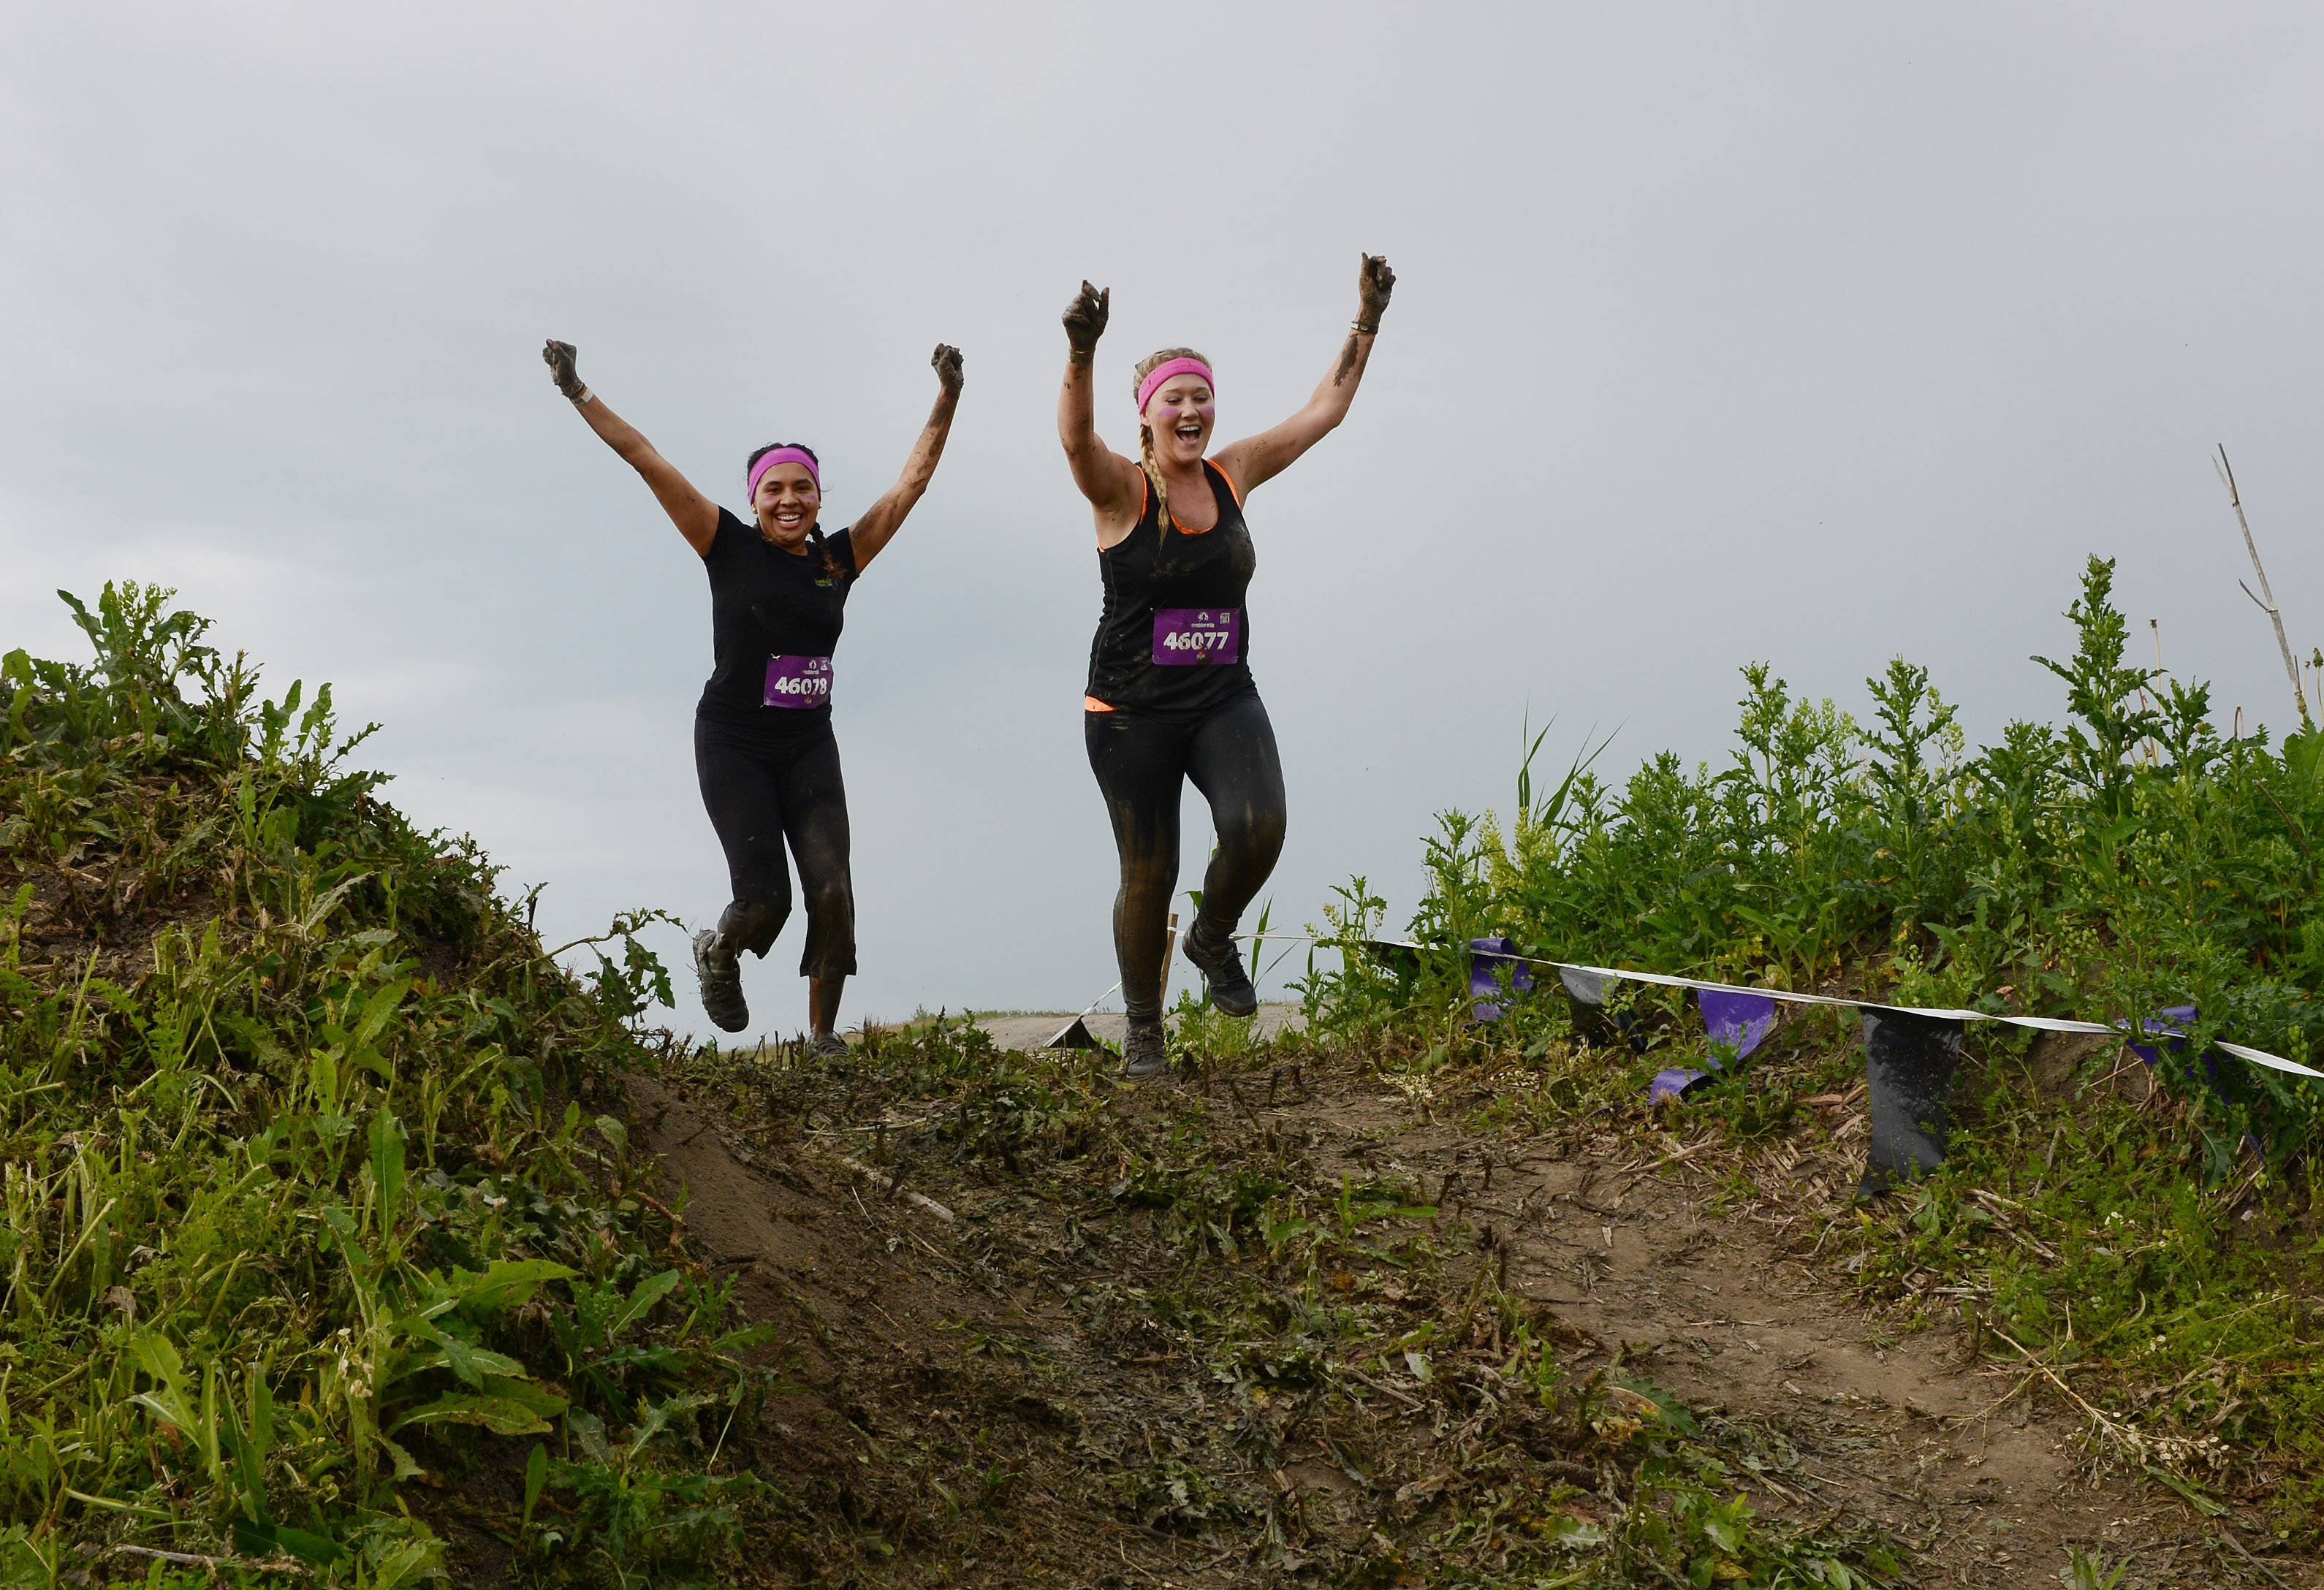 Kate Dominguez, left, and Brentney Hutchinson, both of Chicago, celebrate as they reach the top of a hill during the Chicago Women's Mudderella at the Lake County Fairgrounds in Grayslake Saturday.